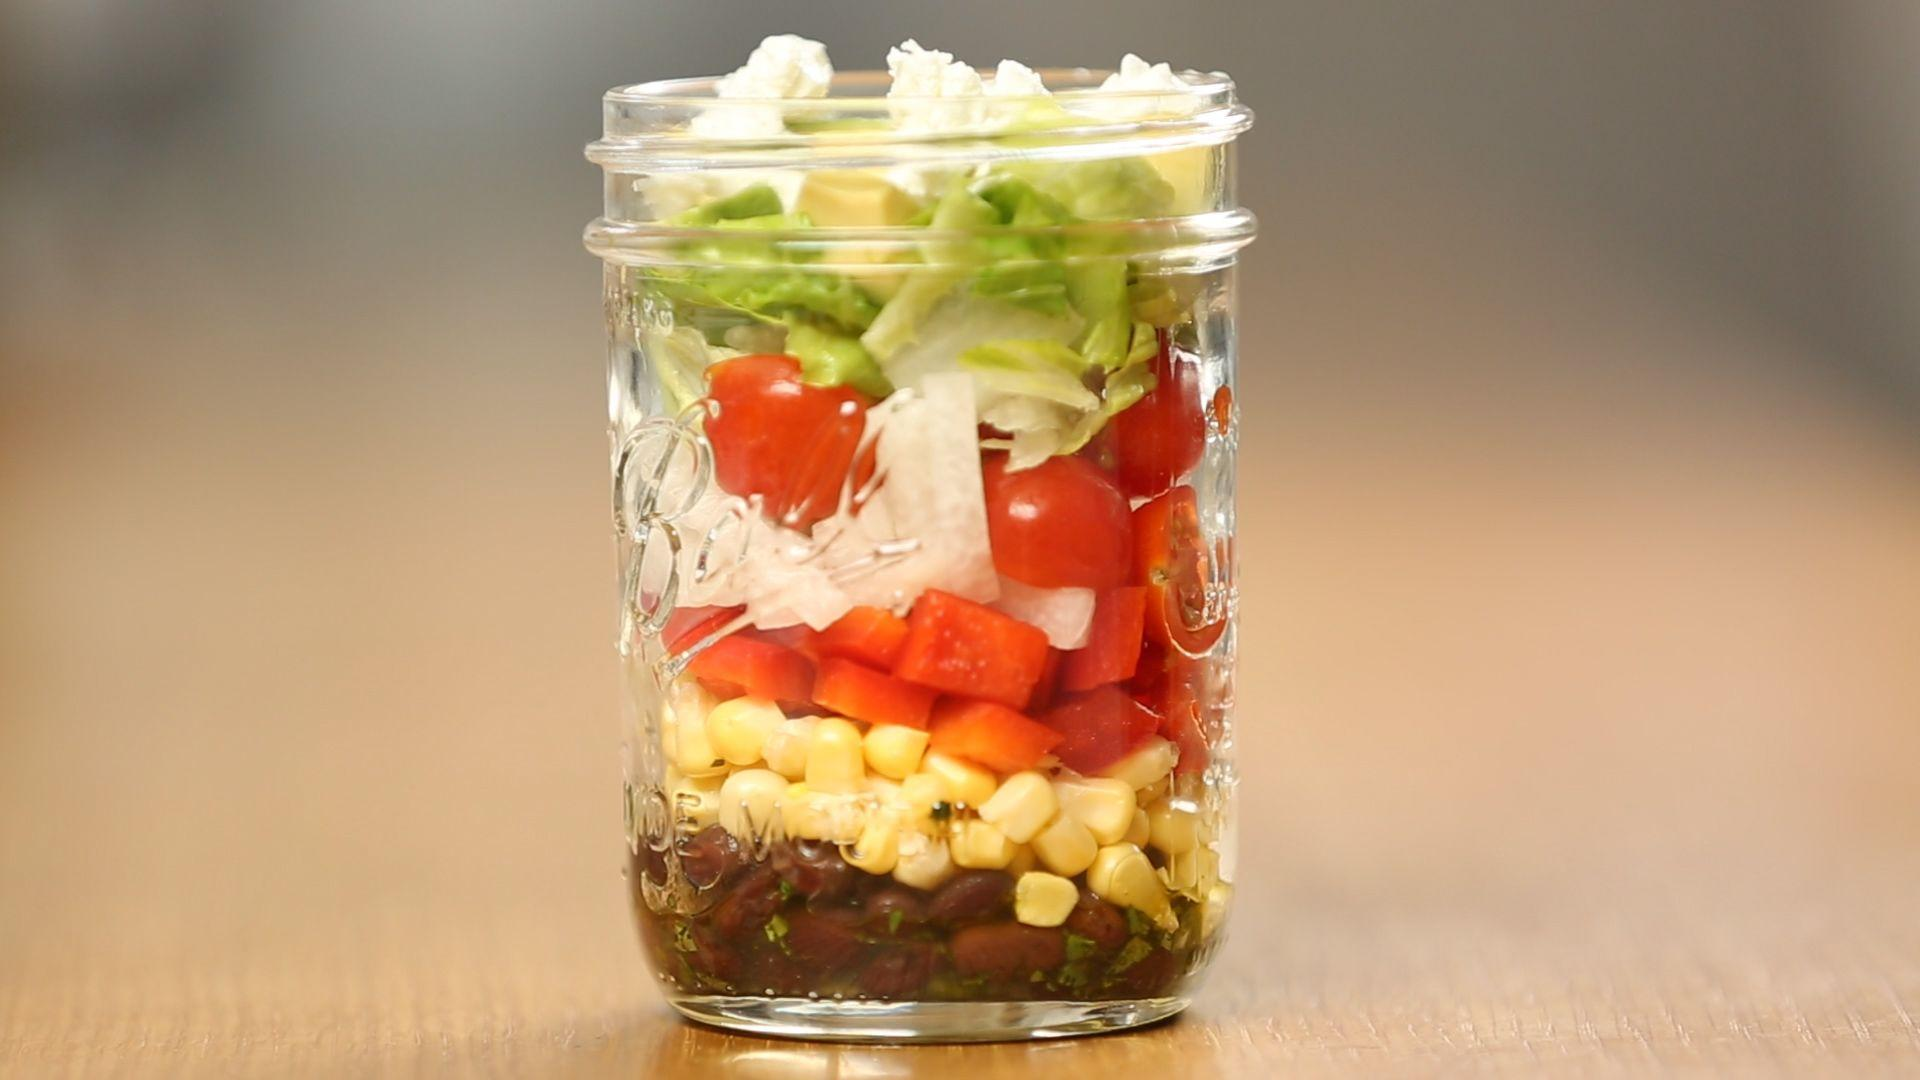 How to Make a Healthy Fiesta Mason Jar Salad